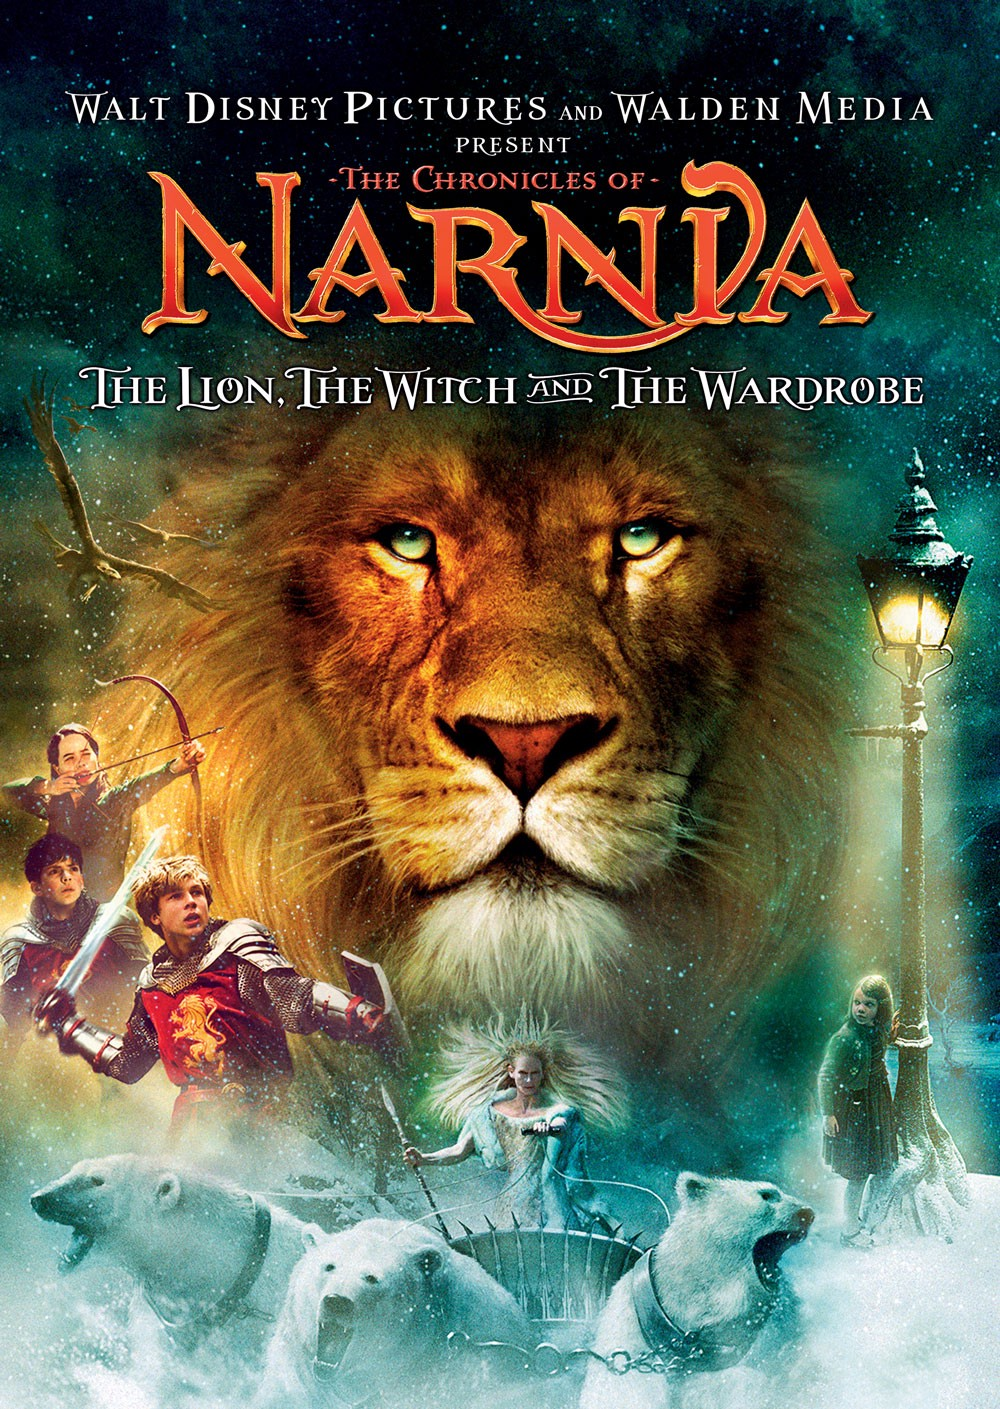 christianity in the chronicles of narnia the lion the witch and the wardrobe by c s lewis Answer: in short, the lion, the witch, and the wardrobe by cs lewis presents a christian worldview through a mythic tale it takes place in narnia, a world of magic in narnia, virtually every fairy tale or mythic creature imaginable comes alive.